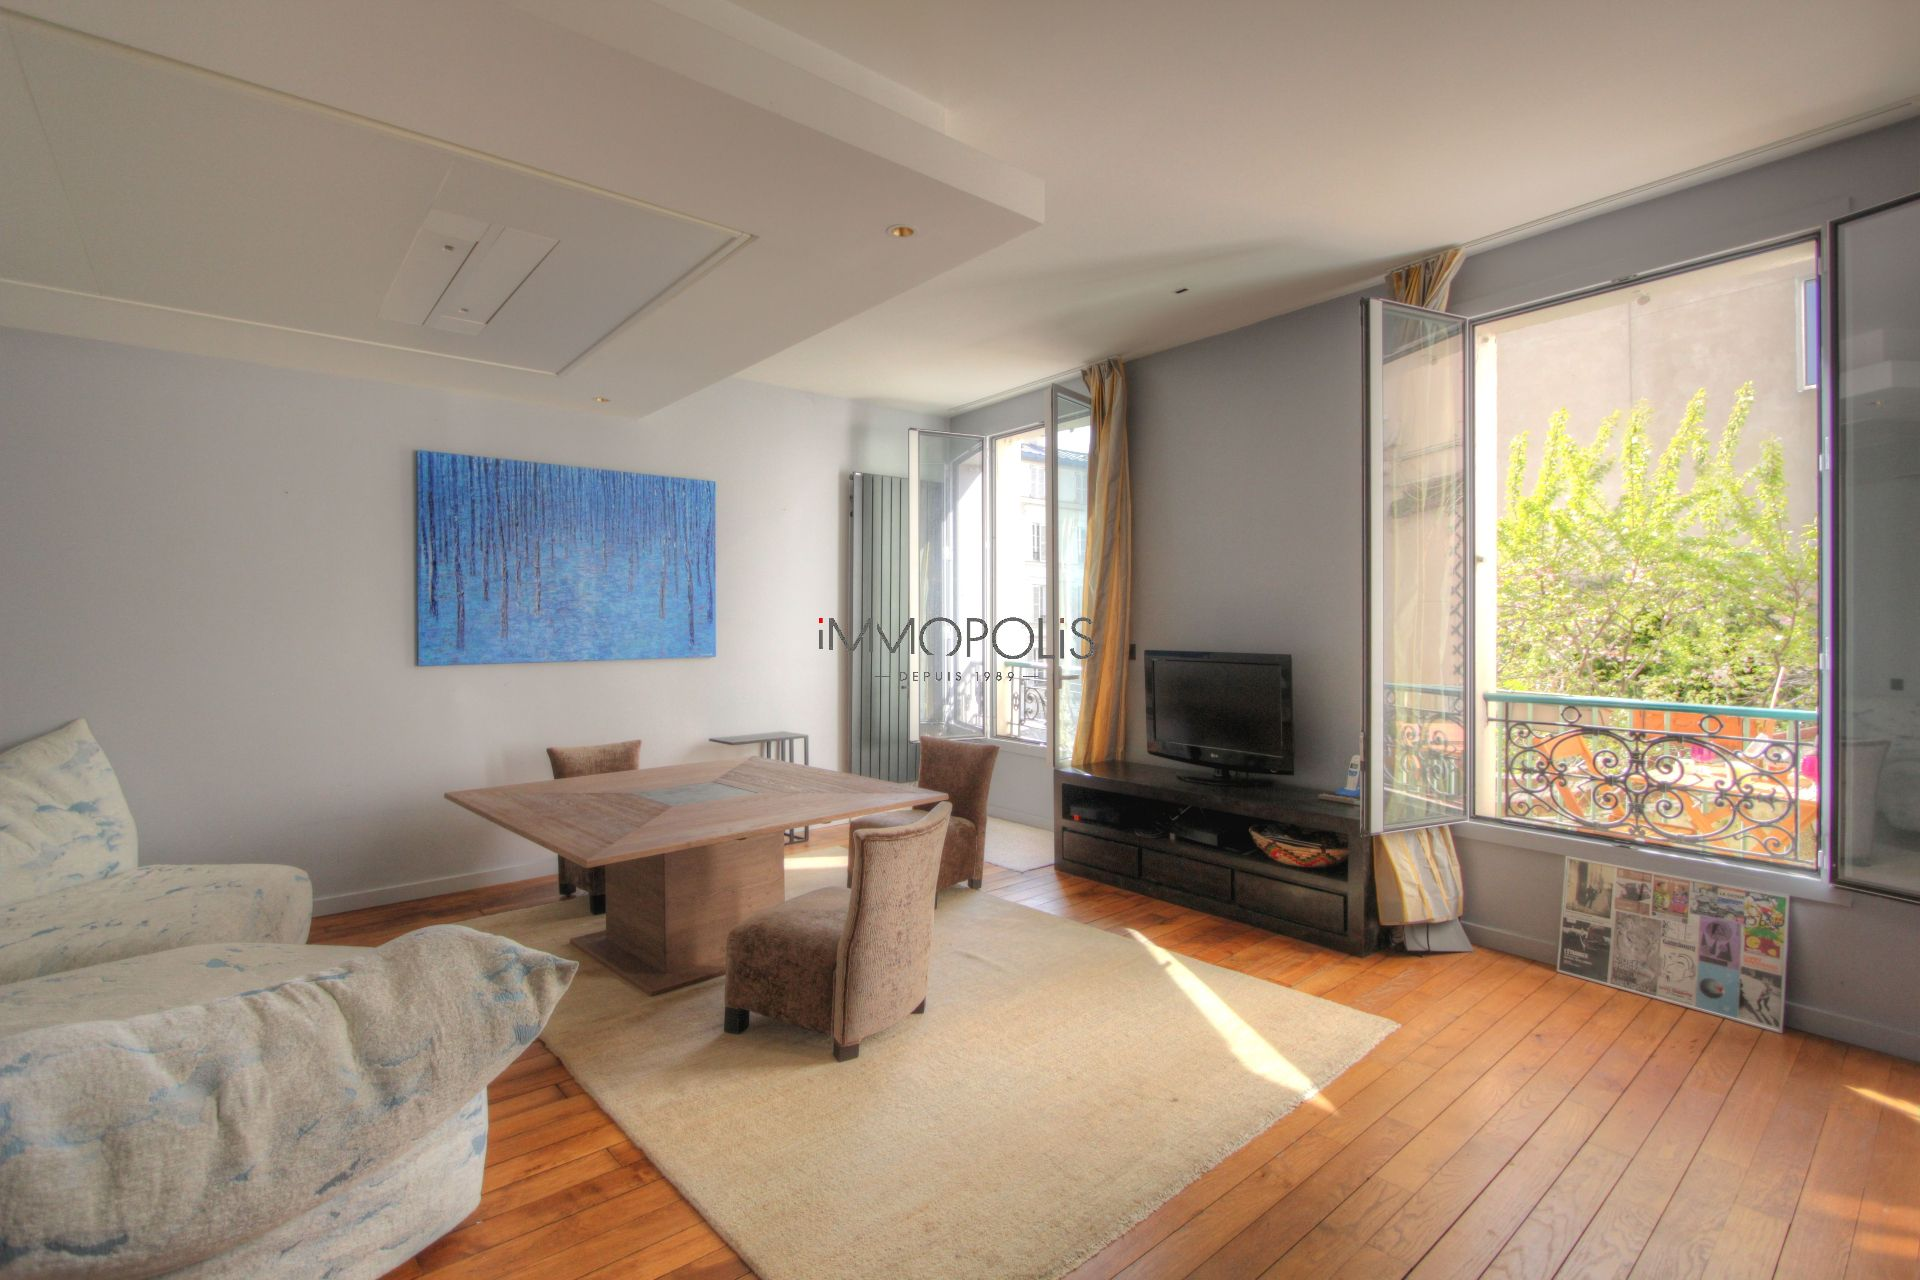 Exceptional in Montmartre (rue Gabrielle): refurbished open space, sumptuous services, with balcony and open view! 3